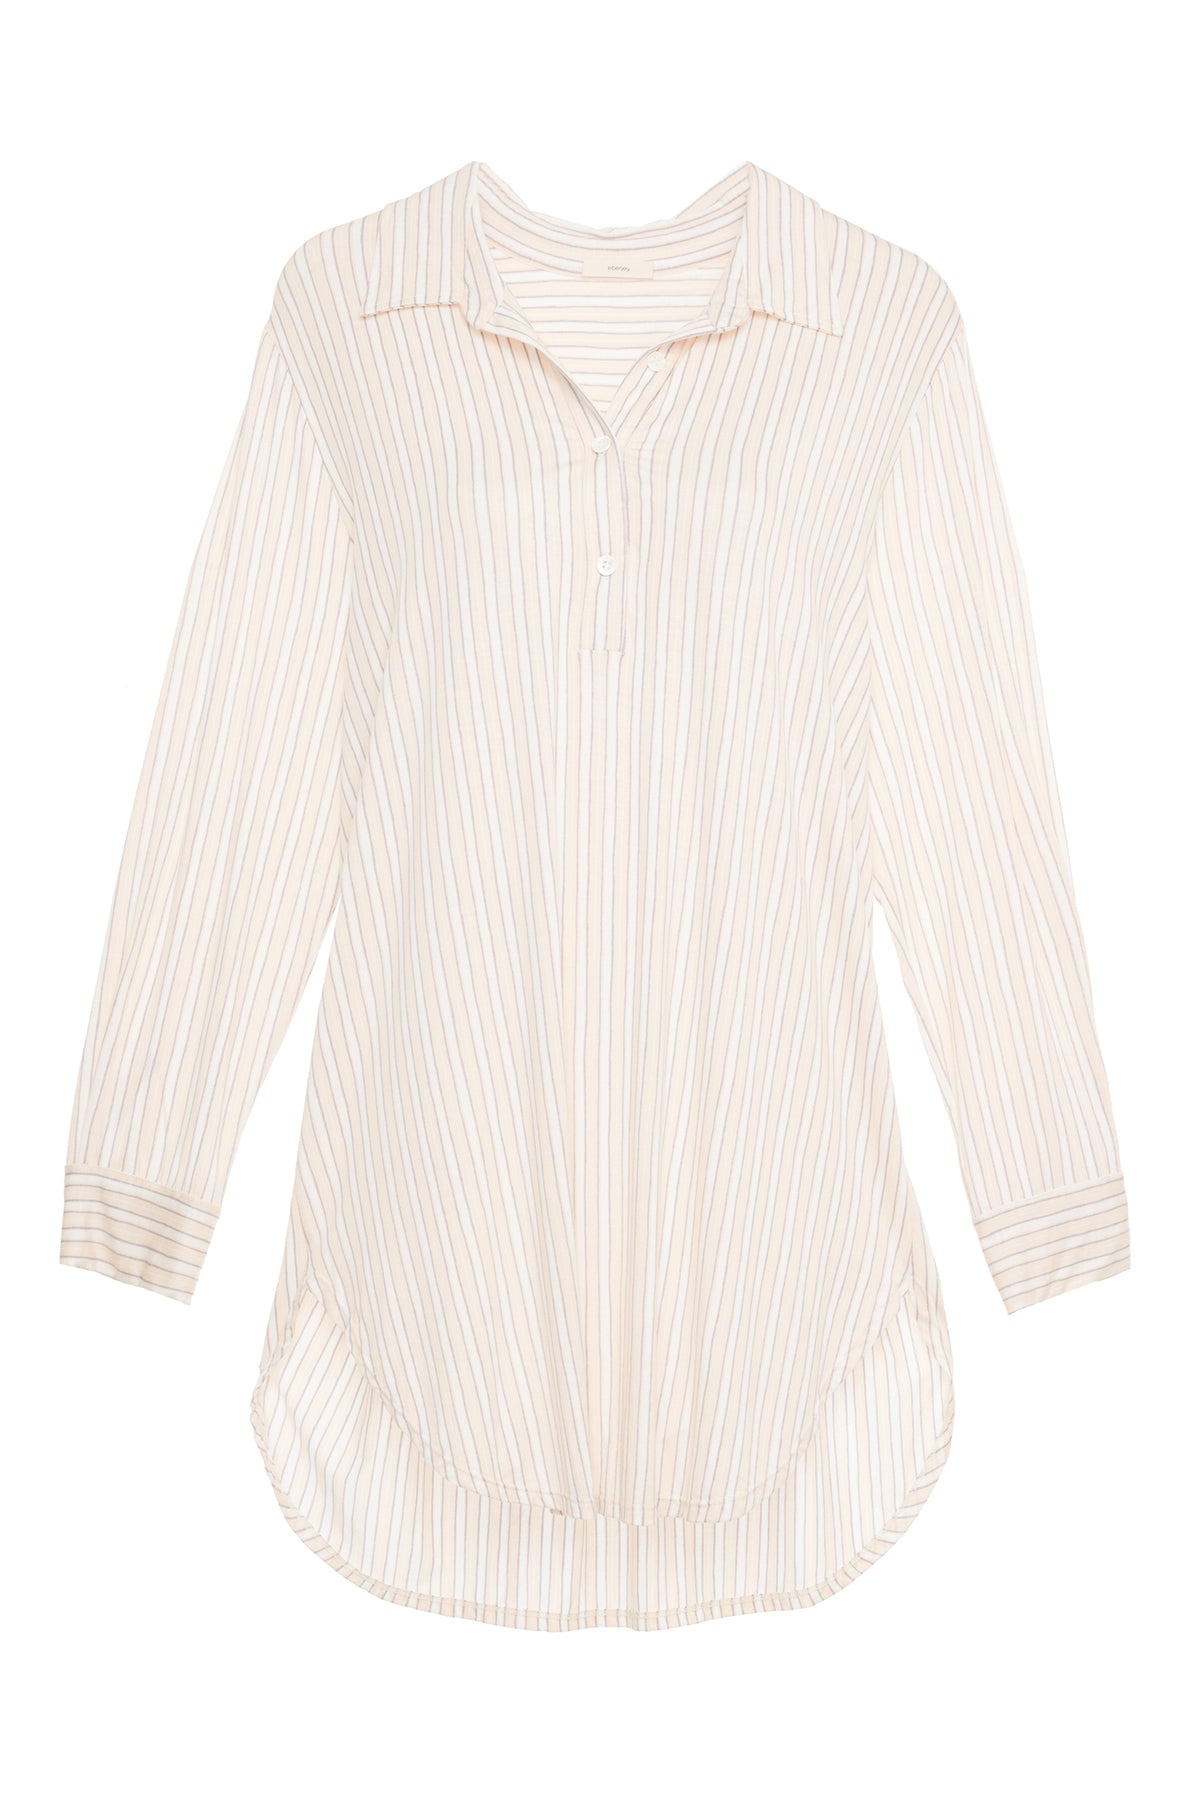 Eberjey Striped Boyfriend Sleepshirt